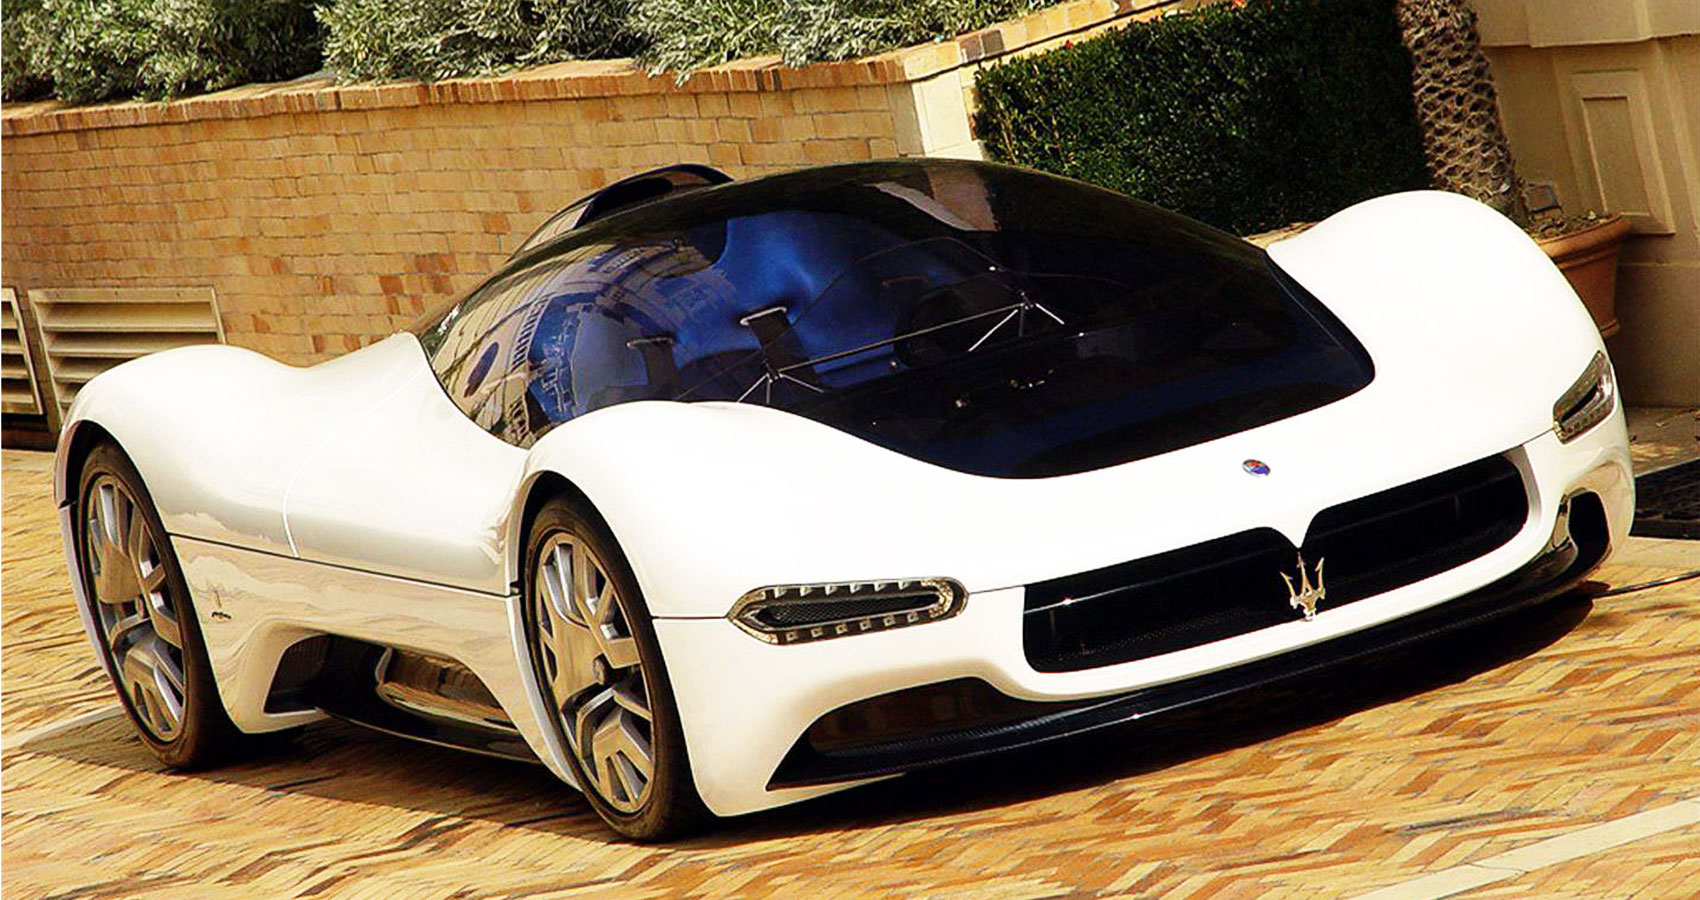 10 Concept Cars We Wish Made It to Production at Spillwords.com